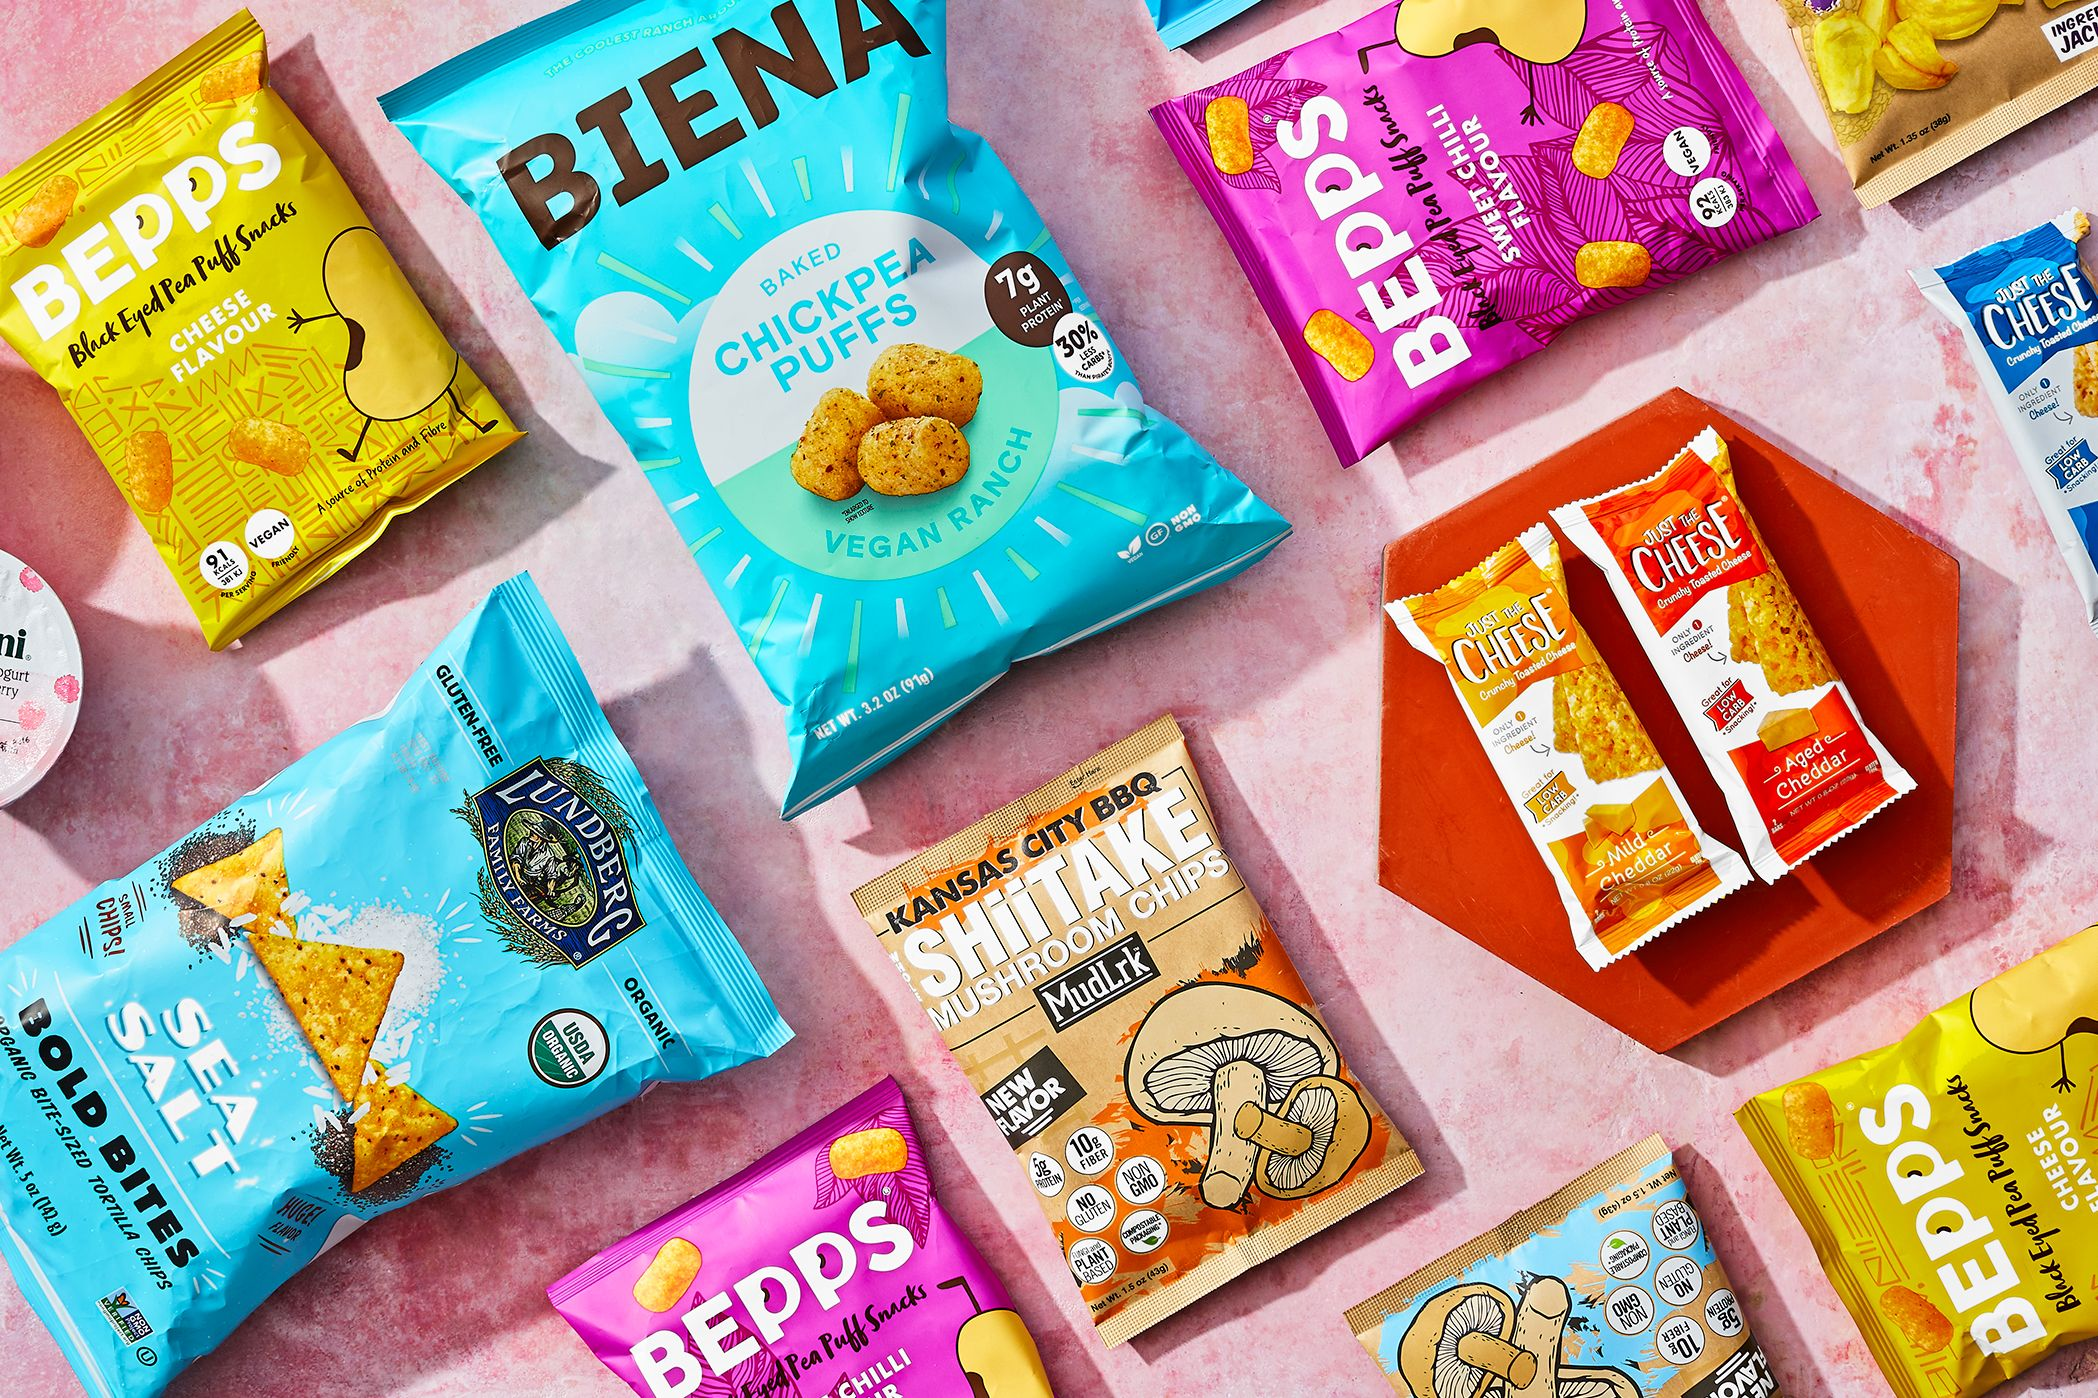 Top 10 Healthy Snack Trends Of 2019, From Women's Health Editors | Womens Health Mag